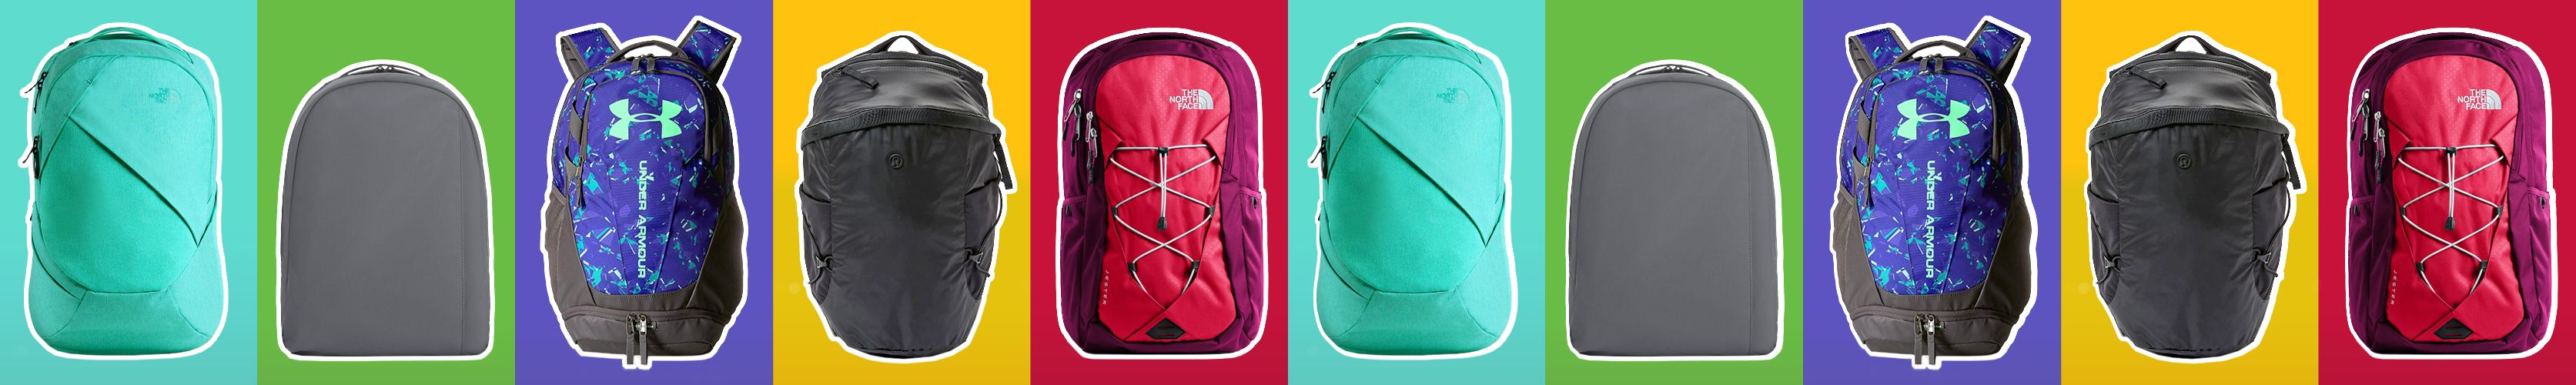 eff868ba916c Backpacks for Women - Best Backpacks 2019